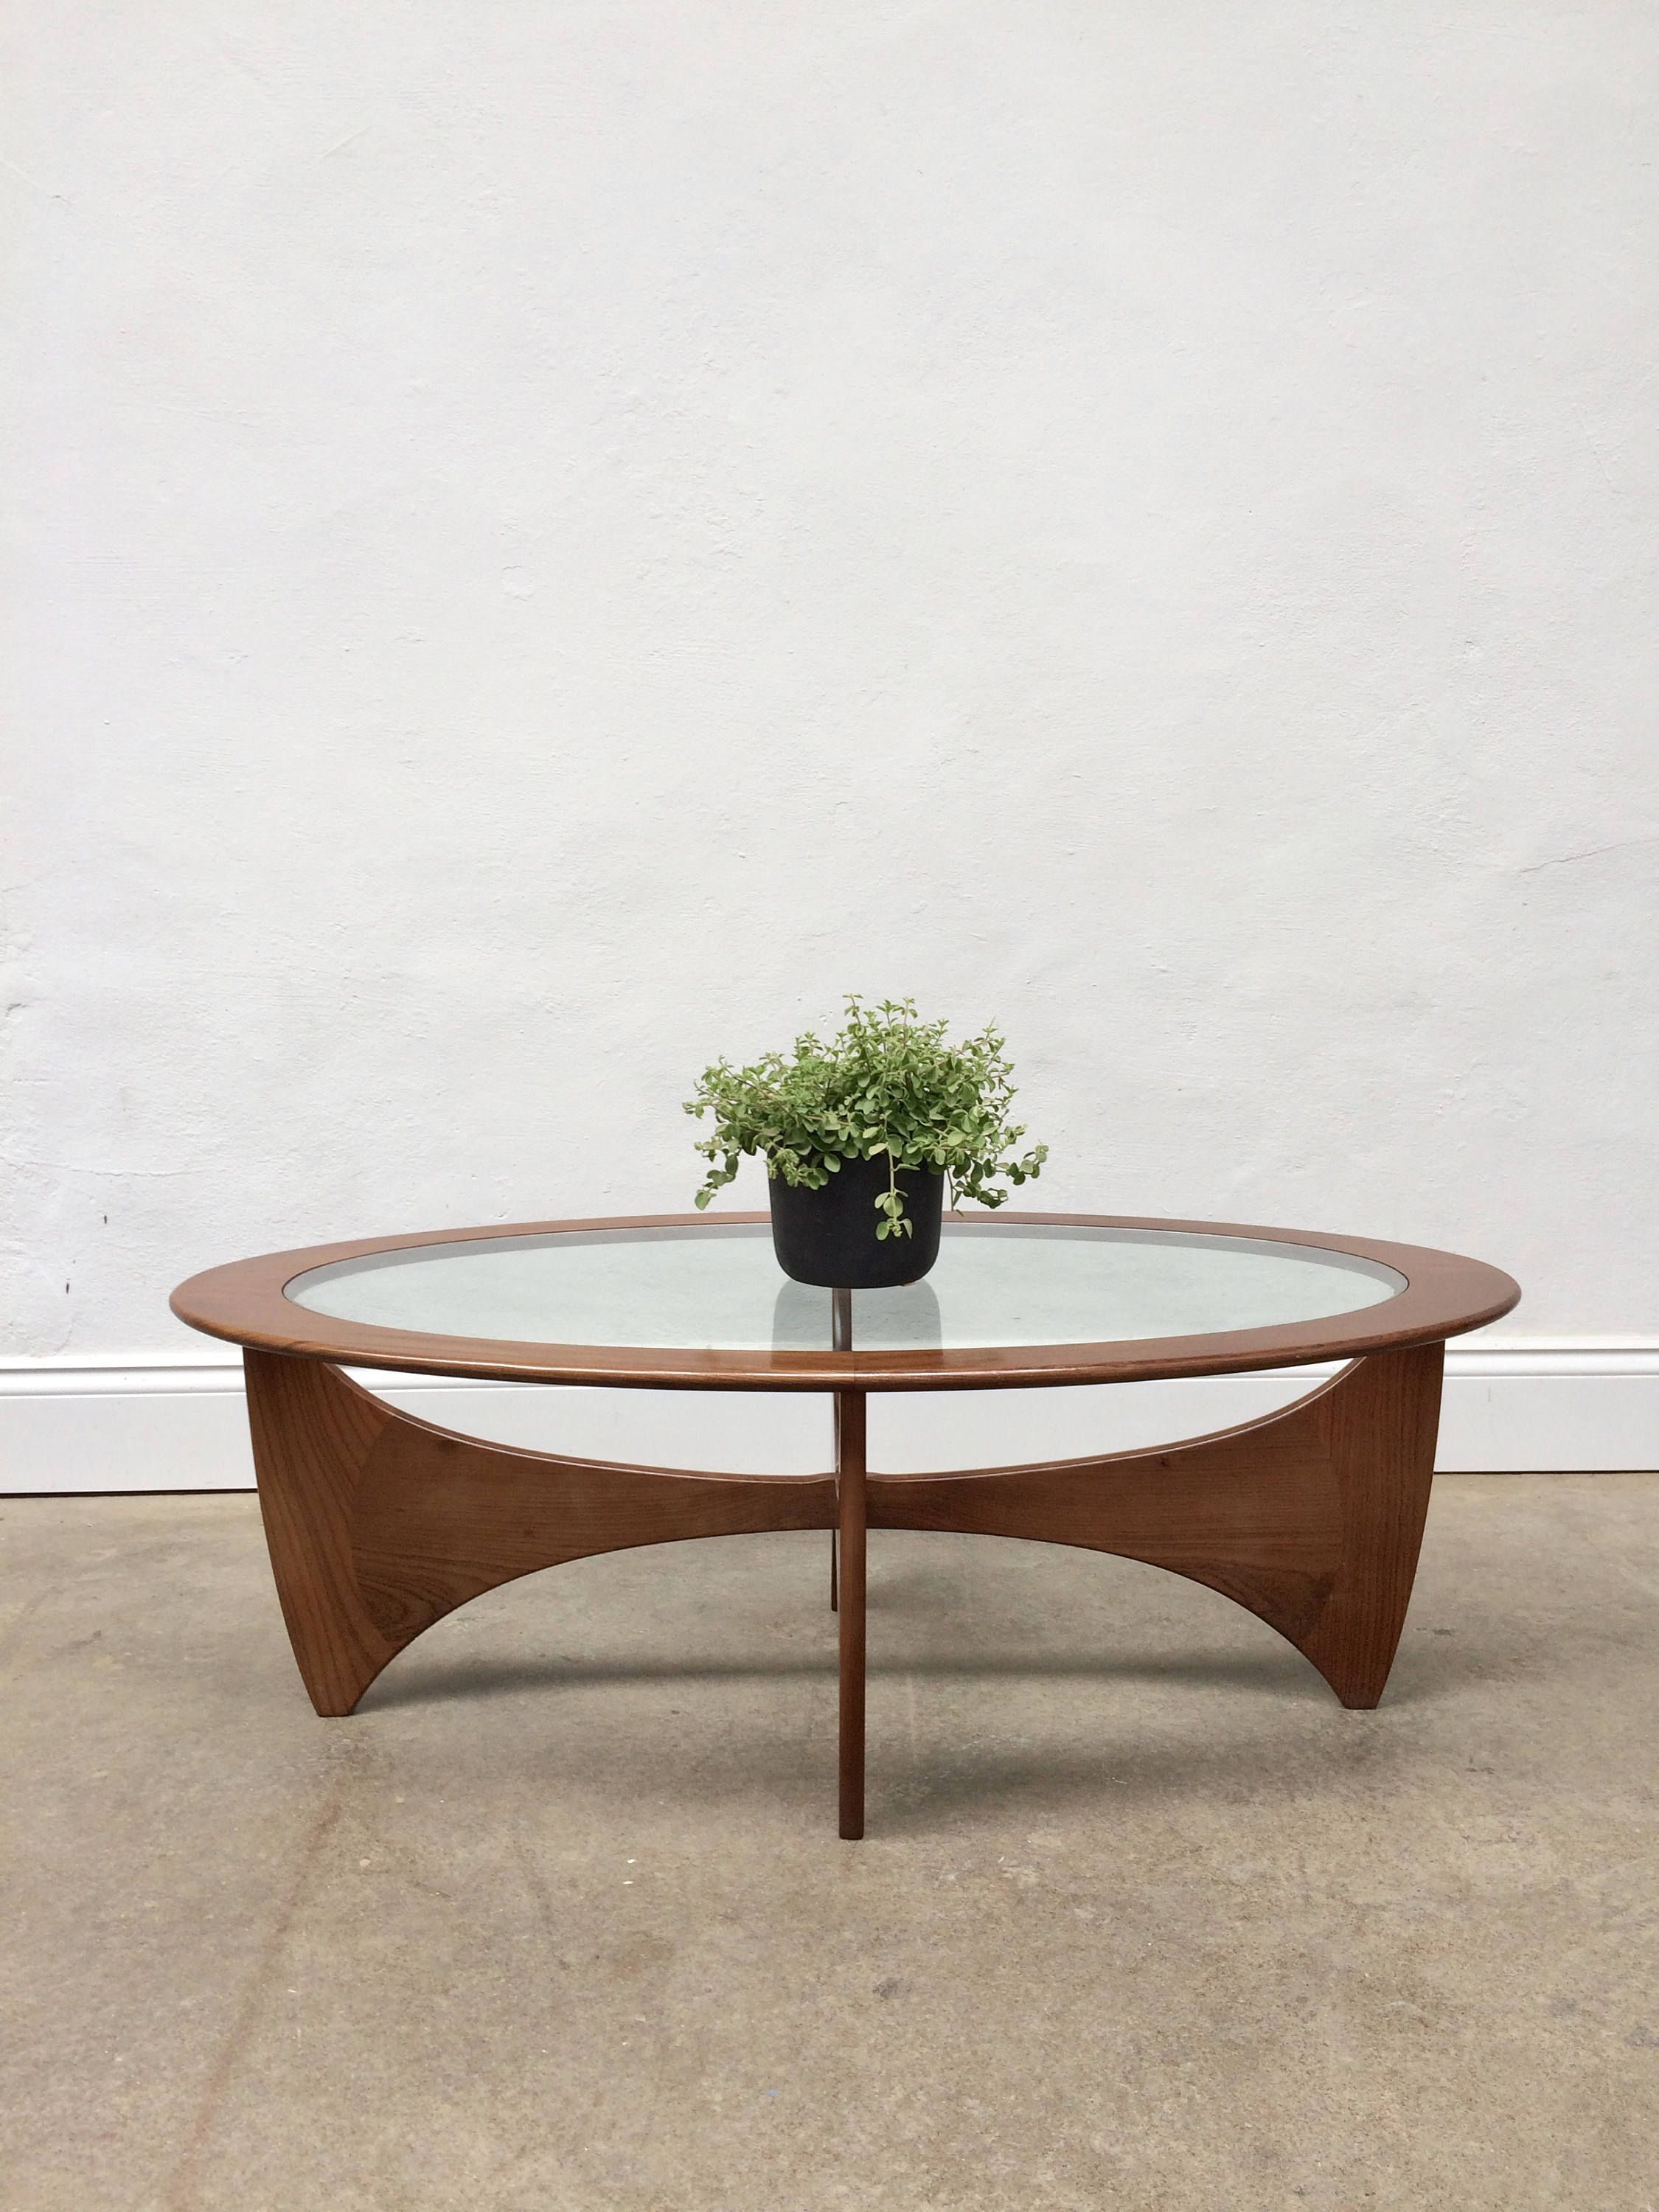 A Really Beautiful G Plan Oval Astro Coffee Table Made From Solid Teak And Glass A Stunning Ova Coffee Table Farmhouse Coffee Table Coffee Table Makeover